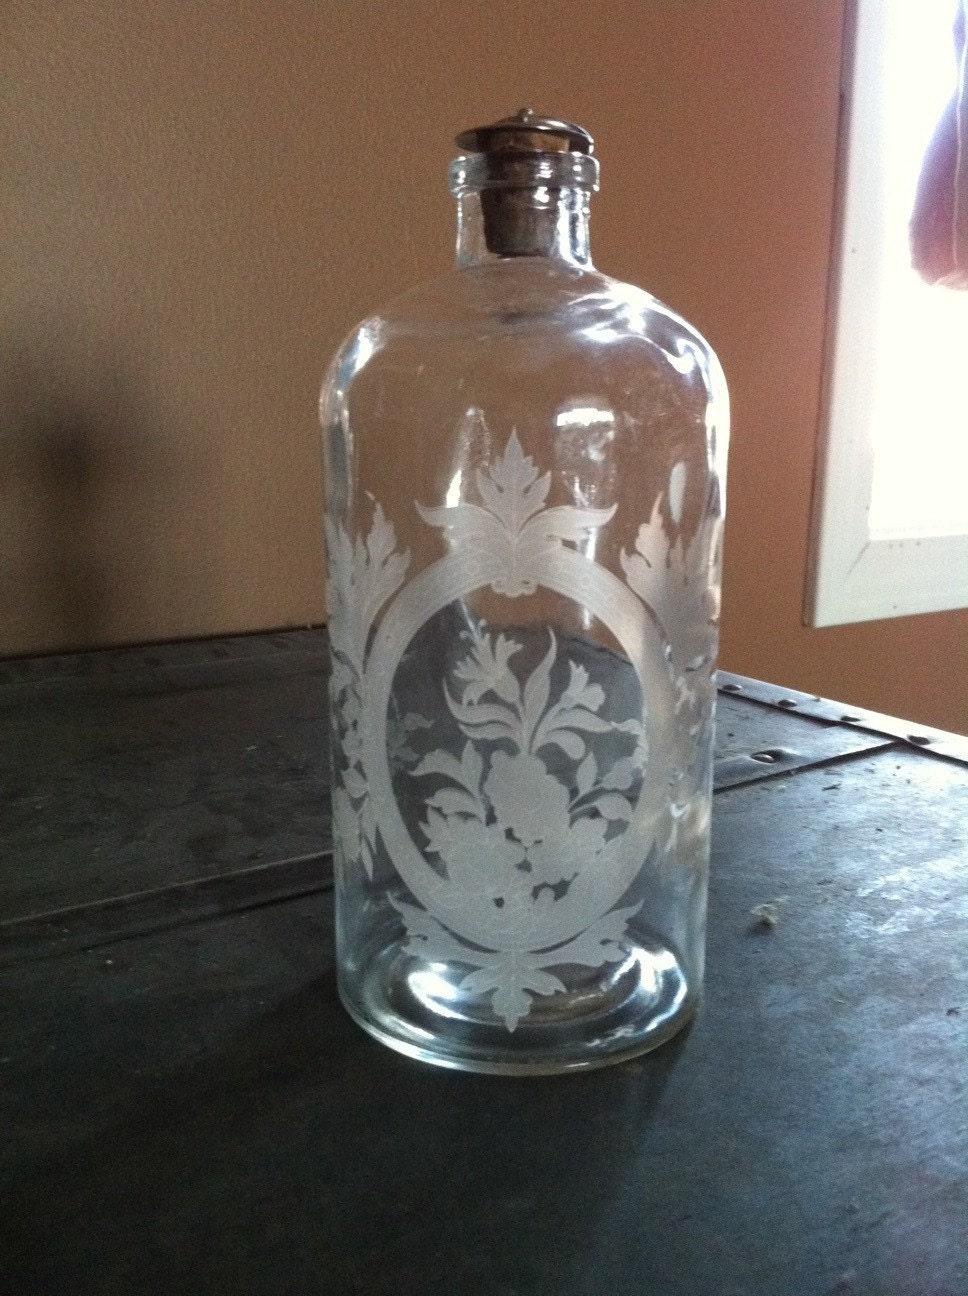 Vintage etched glass bottle